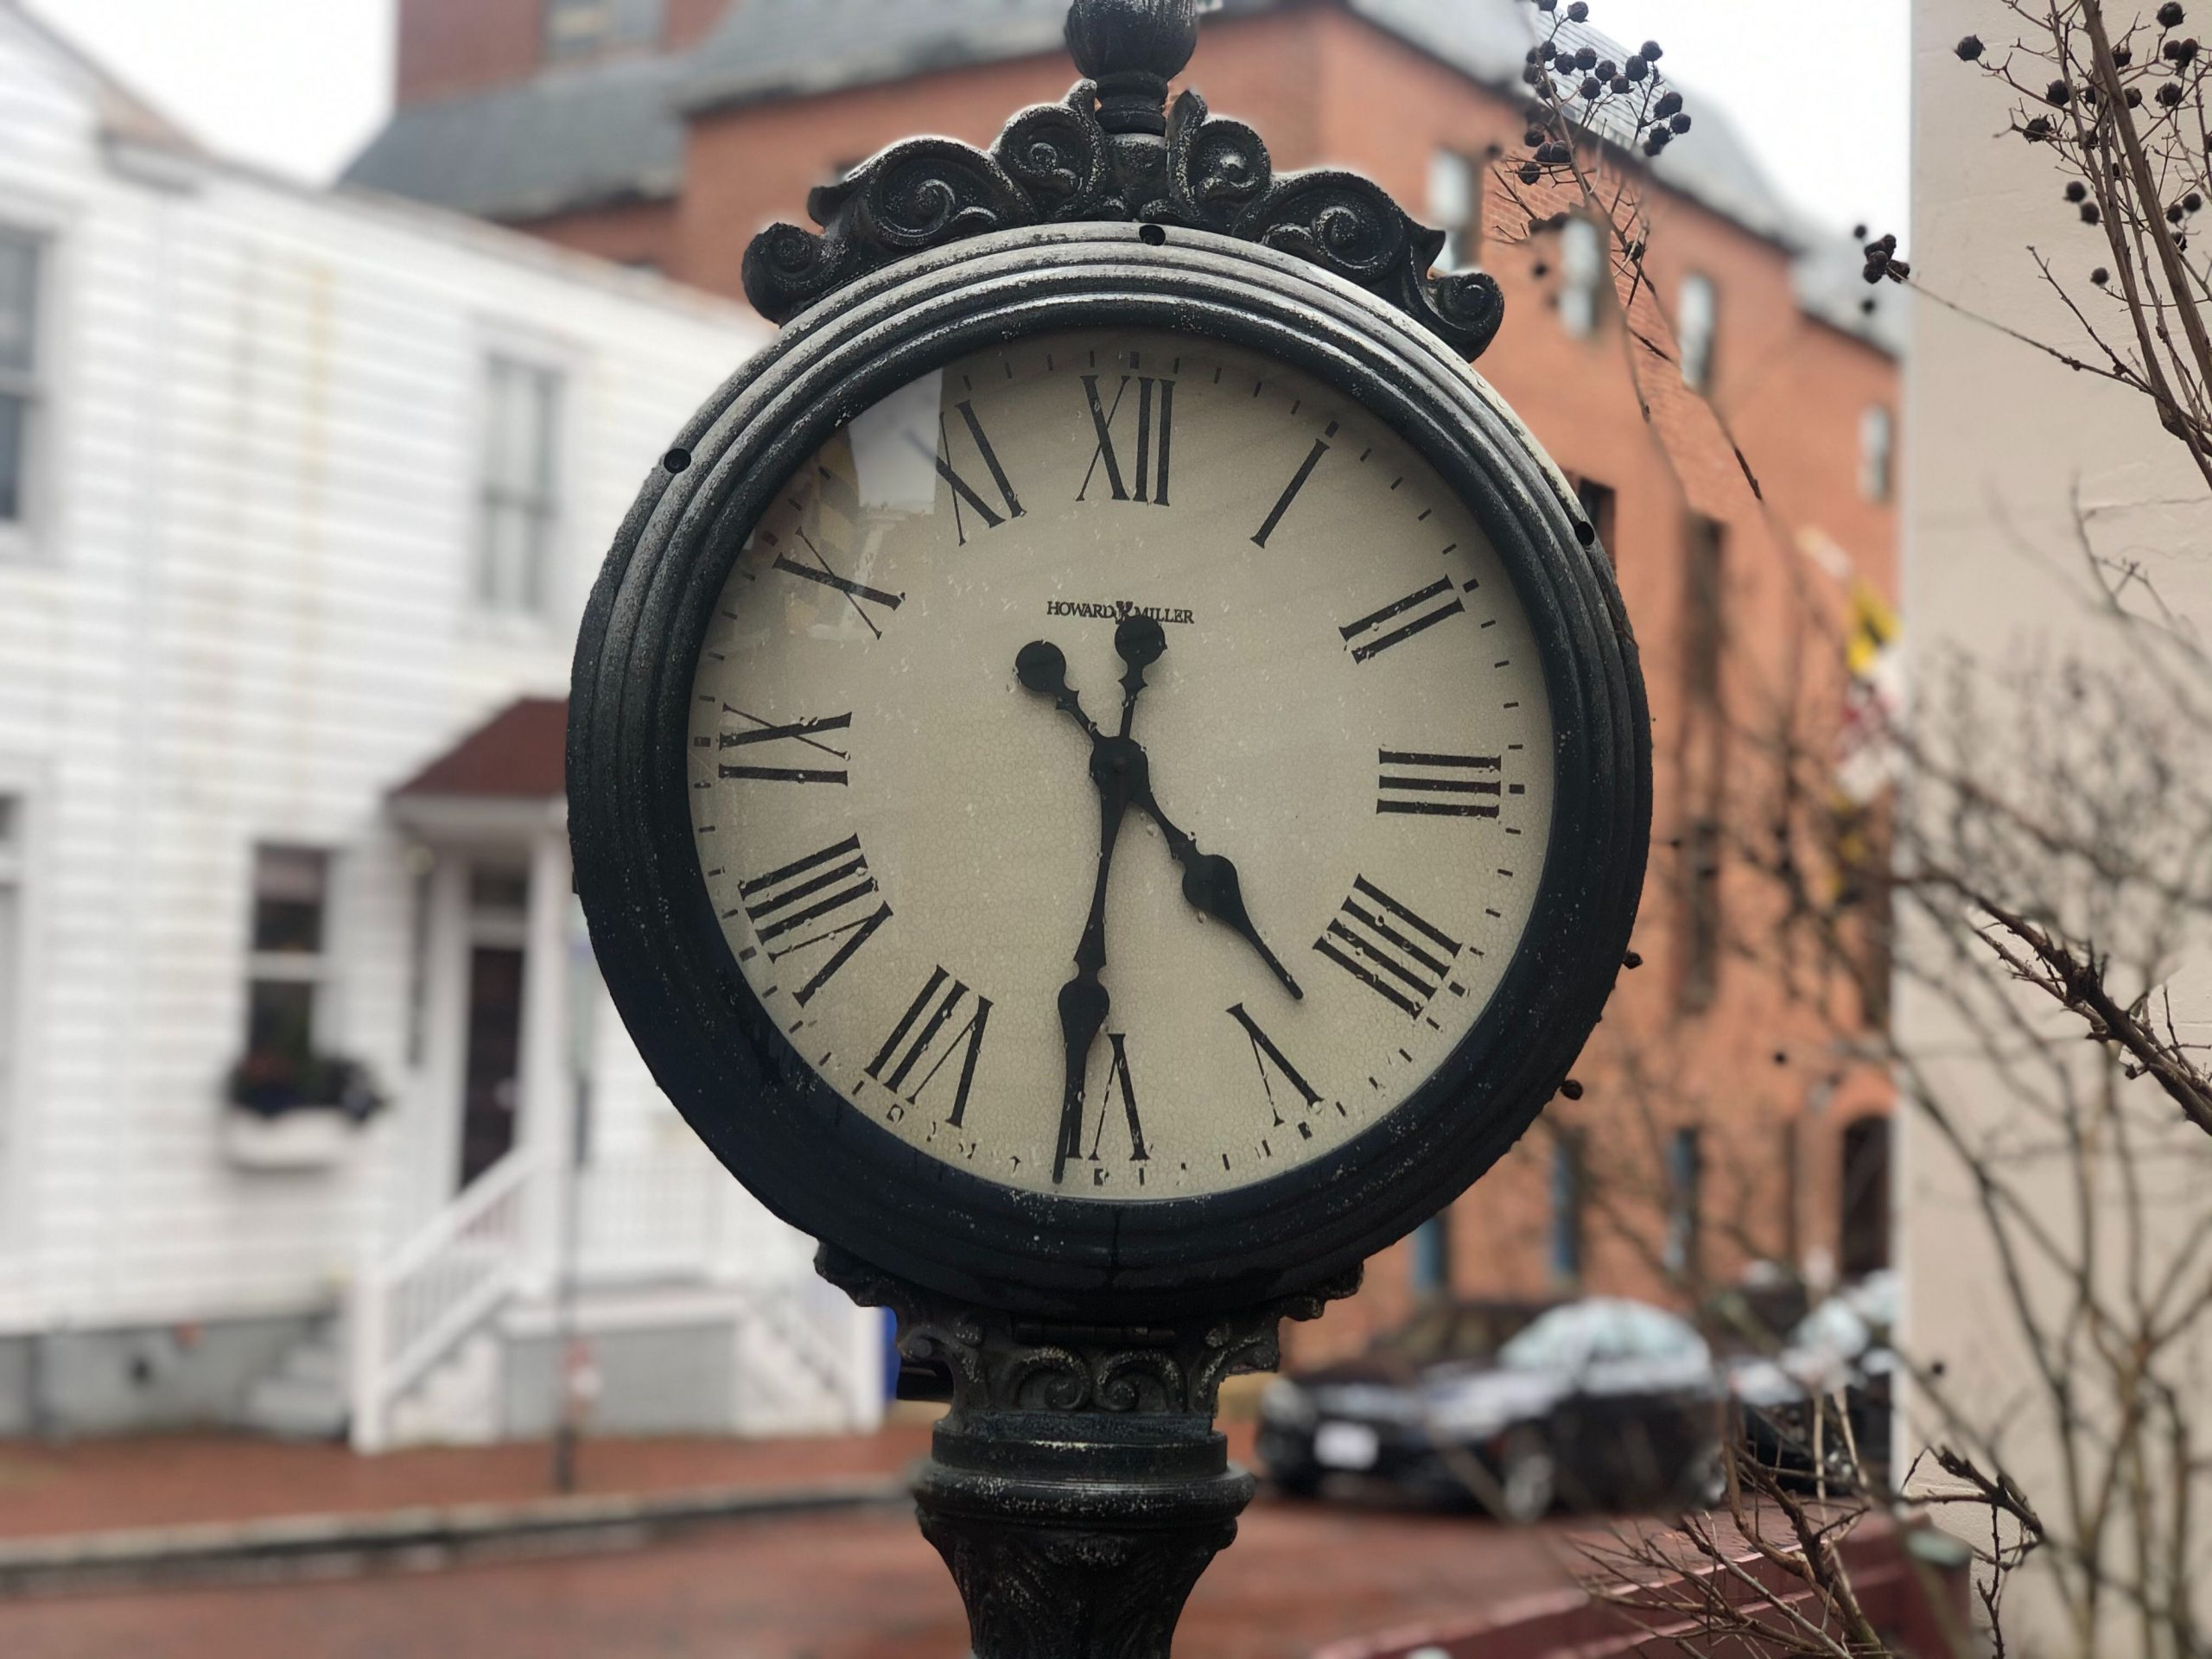 A clock at the corner of State Circle and Francis Street in Annapolis, Maryland, on March 3, 2020. Daylight Saving Time begins on Sunday, March 8, at 2 a.m. (Jeff Barnes/Capital News Service)